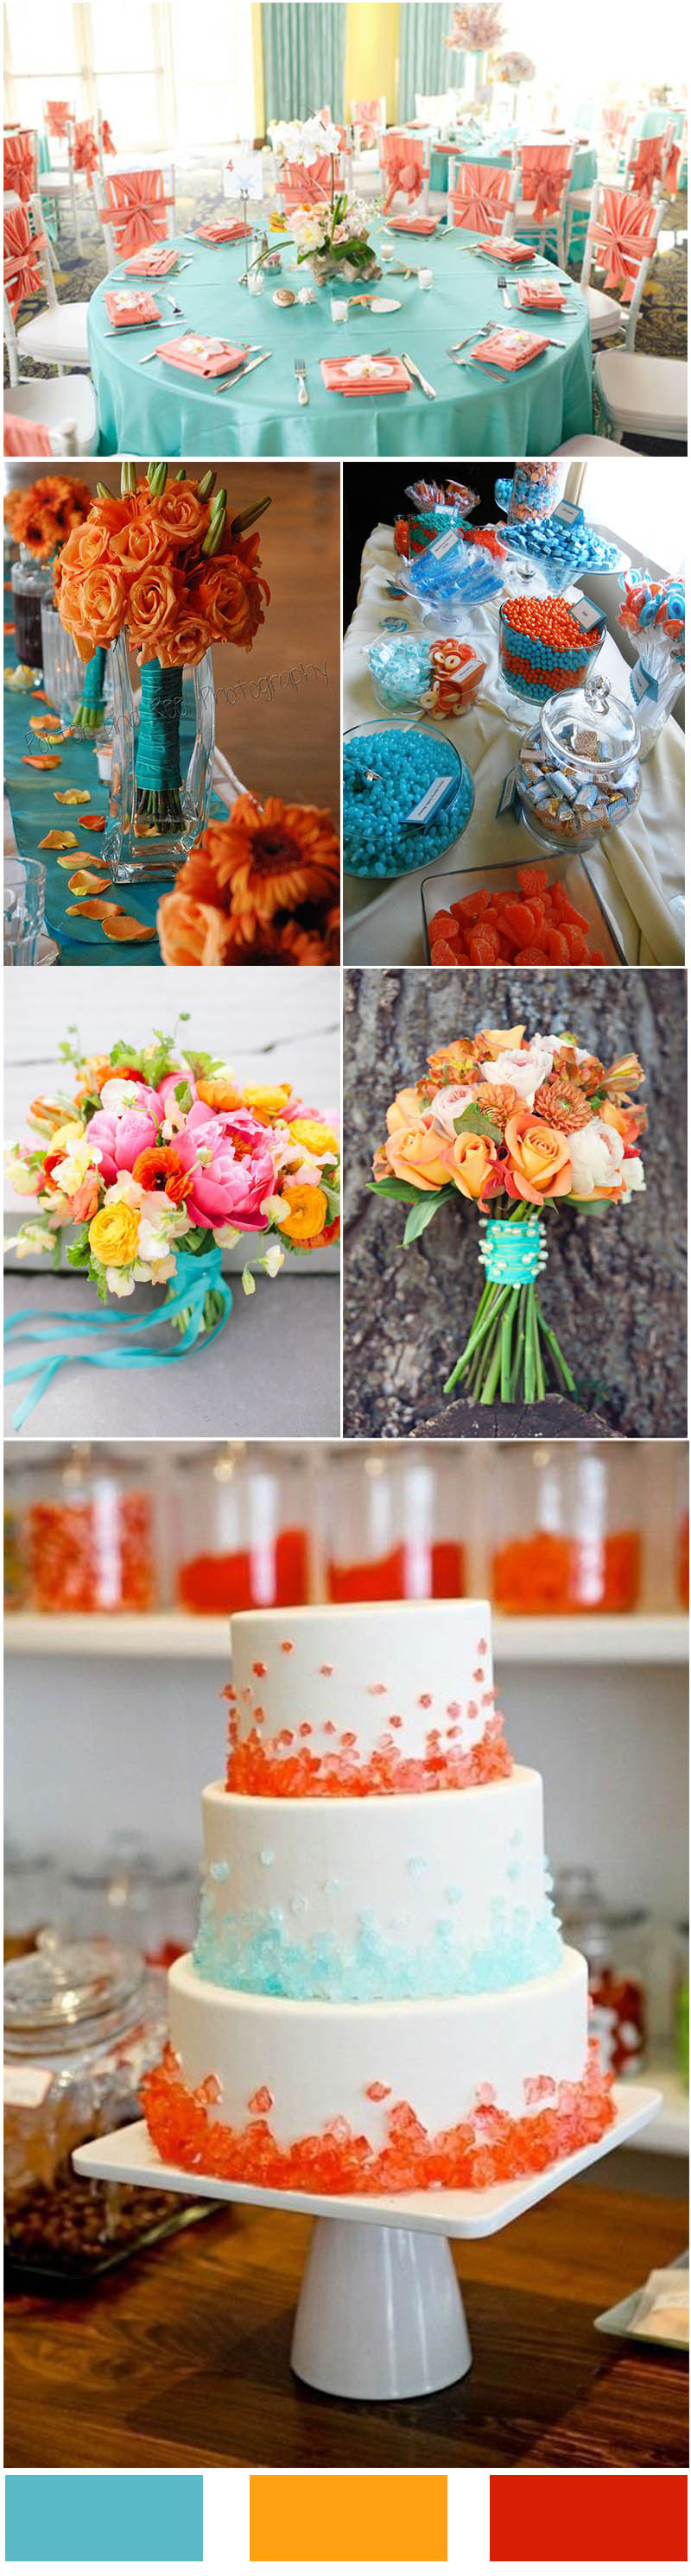 Tiffany Blue and Coral Orange Wedding Color Ideas for your wedding